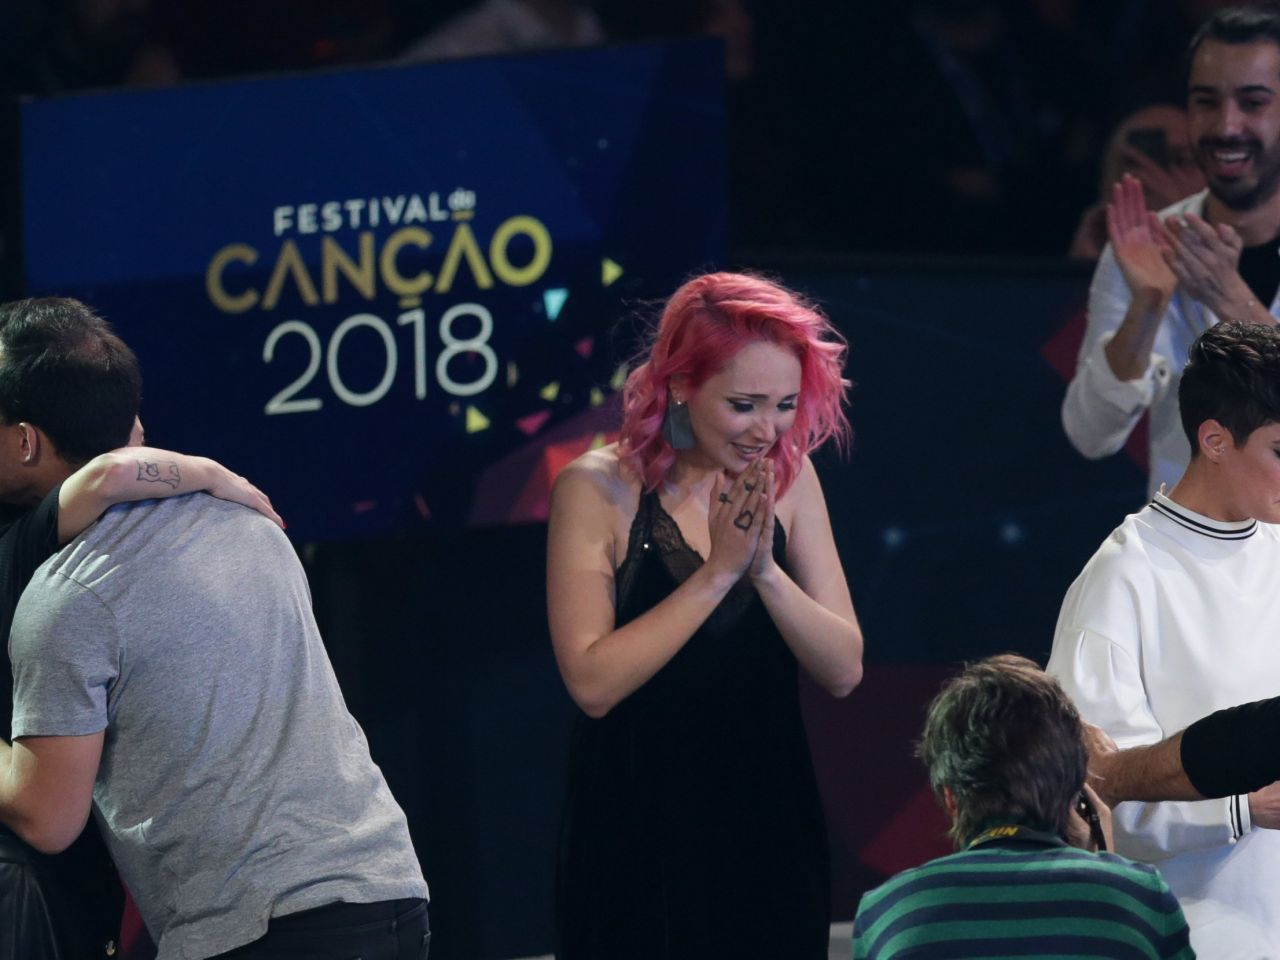 Lisbon braces for Eurovision final with extra security and transport